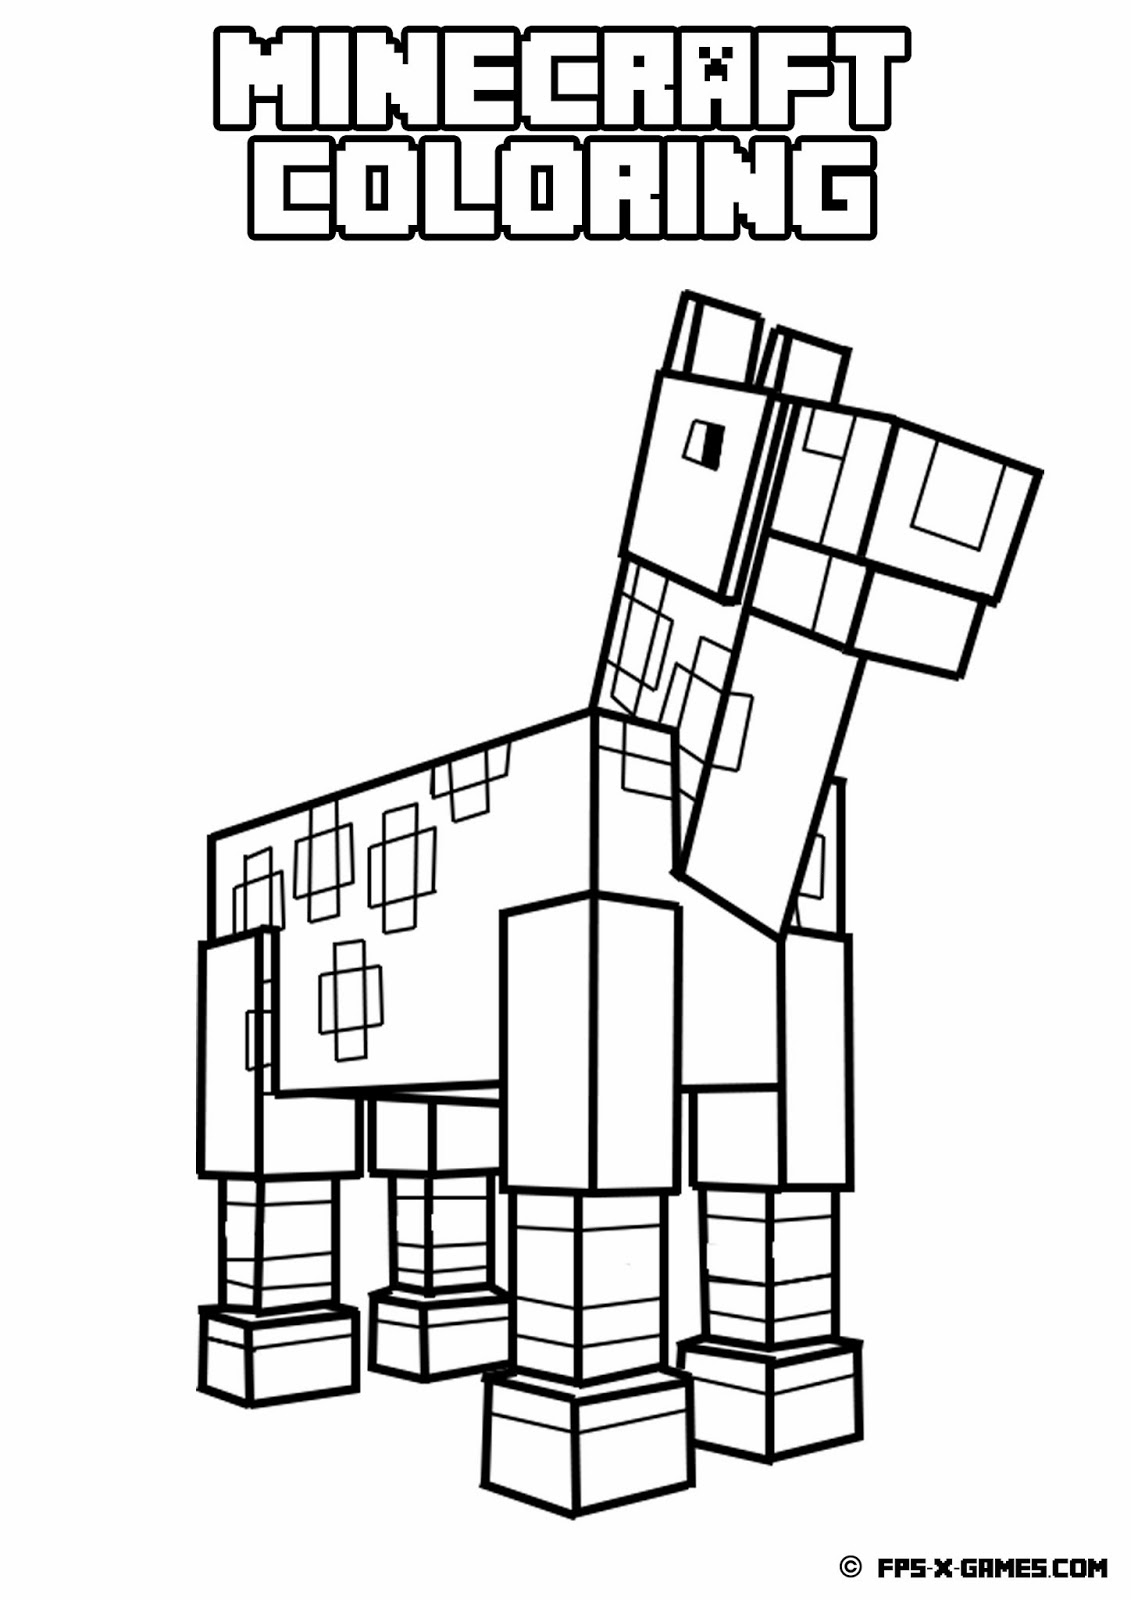 images of minecraft coloring pages minecraft coloring pages at getcoloringscom free images coloring minecraft pages of